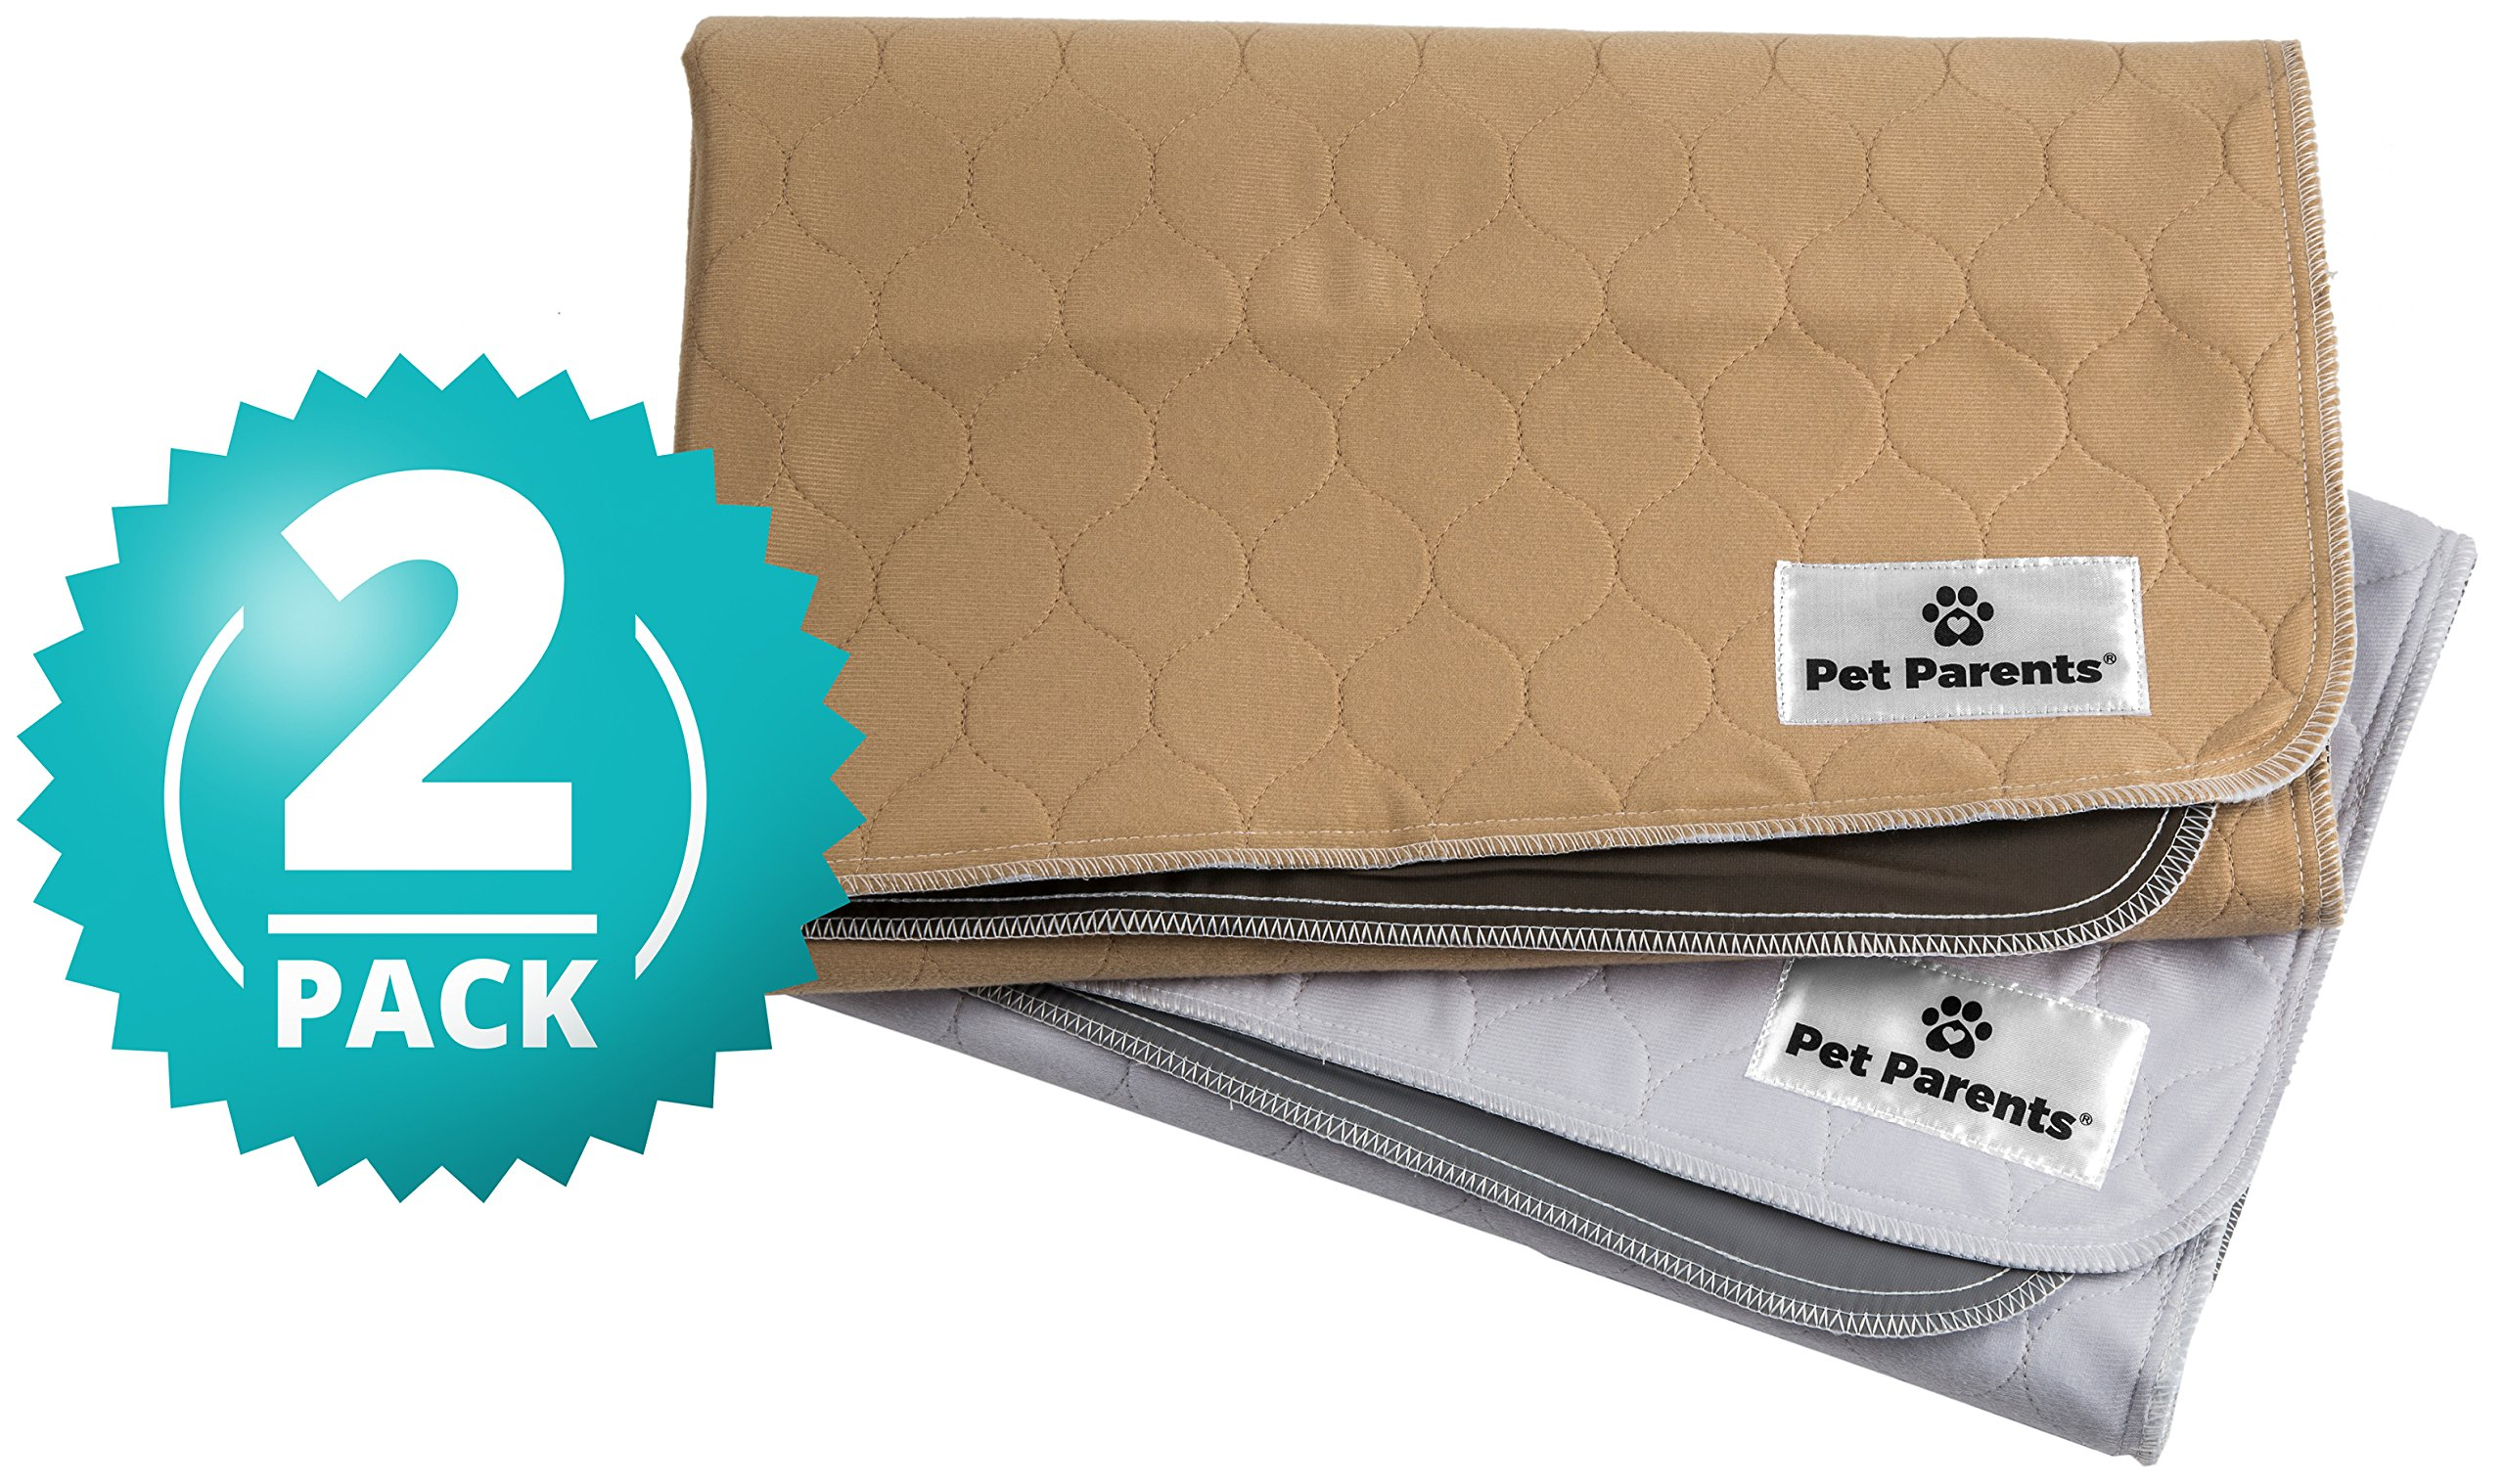 Pet Parents Washable Dog Pee Pads (2pack) of (34x36) Premium Pee Pads for Dogs, Waterproof Whelping Pads, Reusable Dog Training Pads, Quality Travel Pet Pee Pads! (1 Tan & 1 Grey)